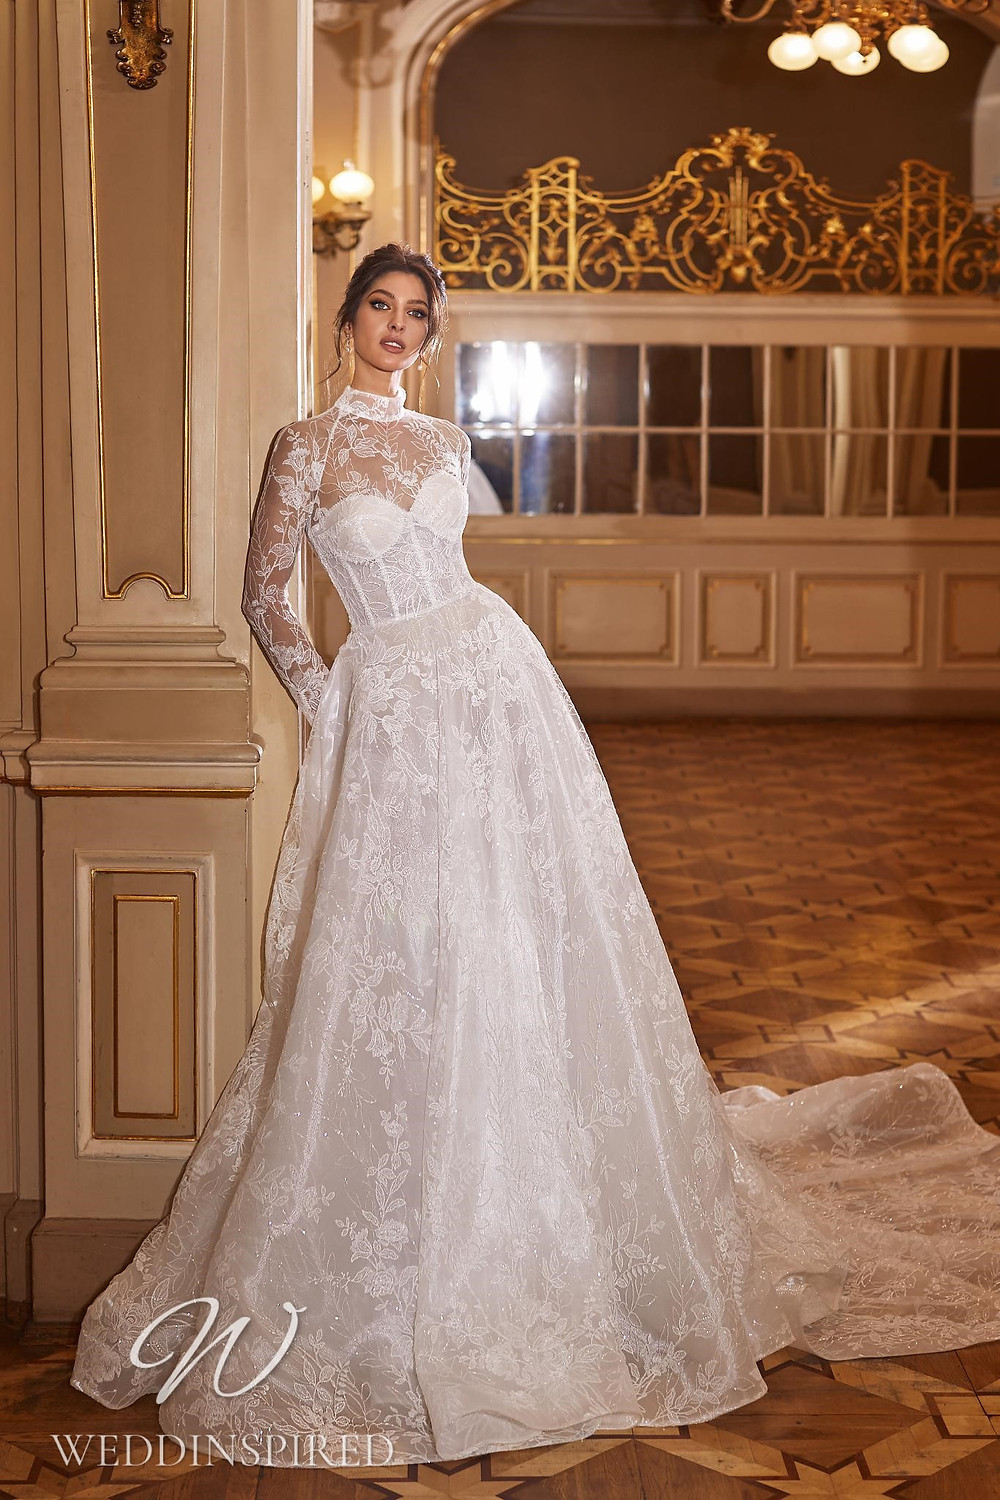 A Ricca Sposa 2022 lace and tulle A-line wedding dress with long sleeves